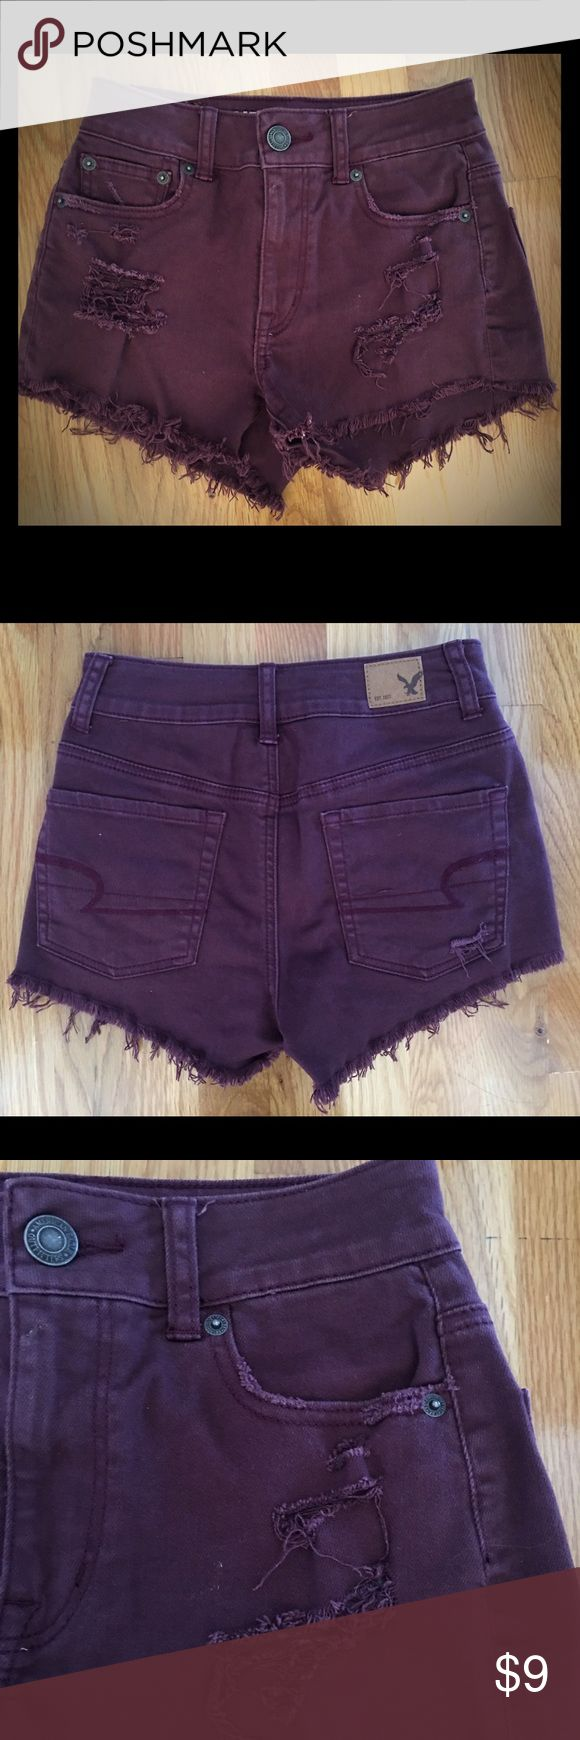 American Eagle Burgundy Shorts Sz 0 American Eagle Outfitters burgundy stretch shorts size 0. Factory made destruction on front and back. Only worn a few times. They are in good condition and were kept in a smoke free home. American Eagle Outfitters Shorts